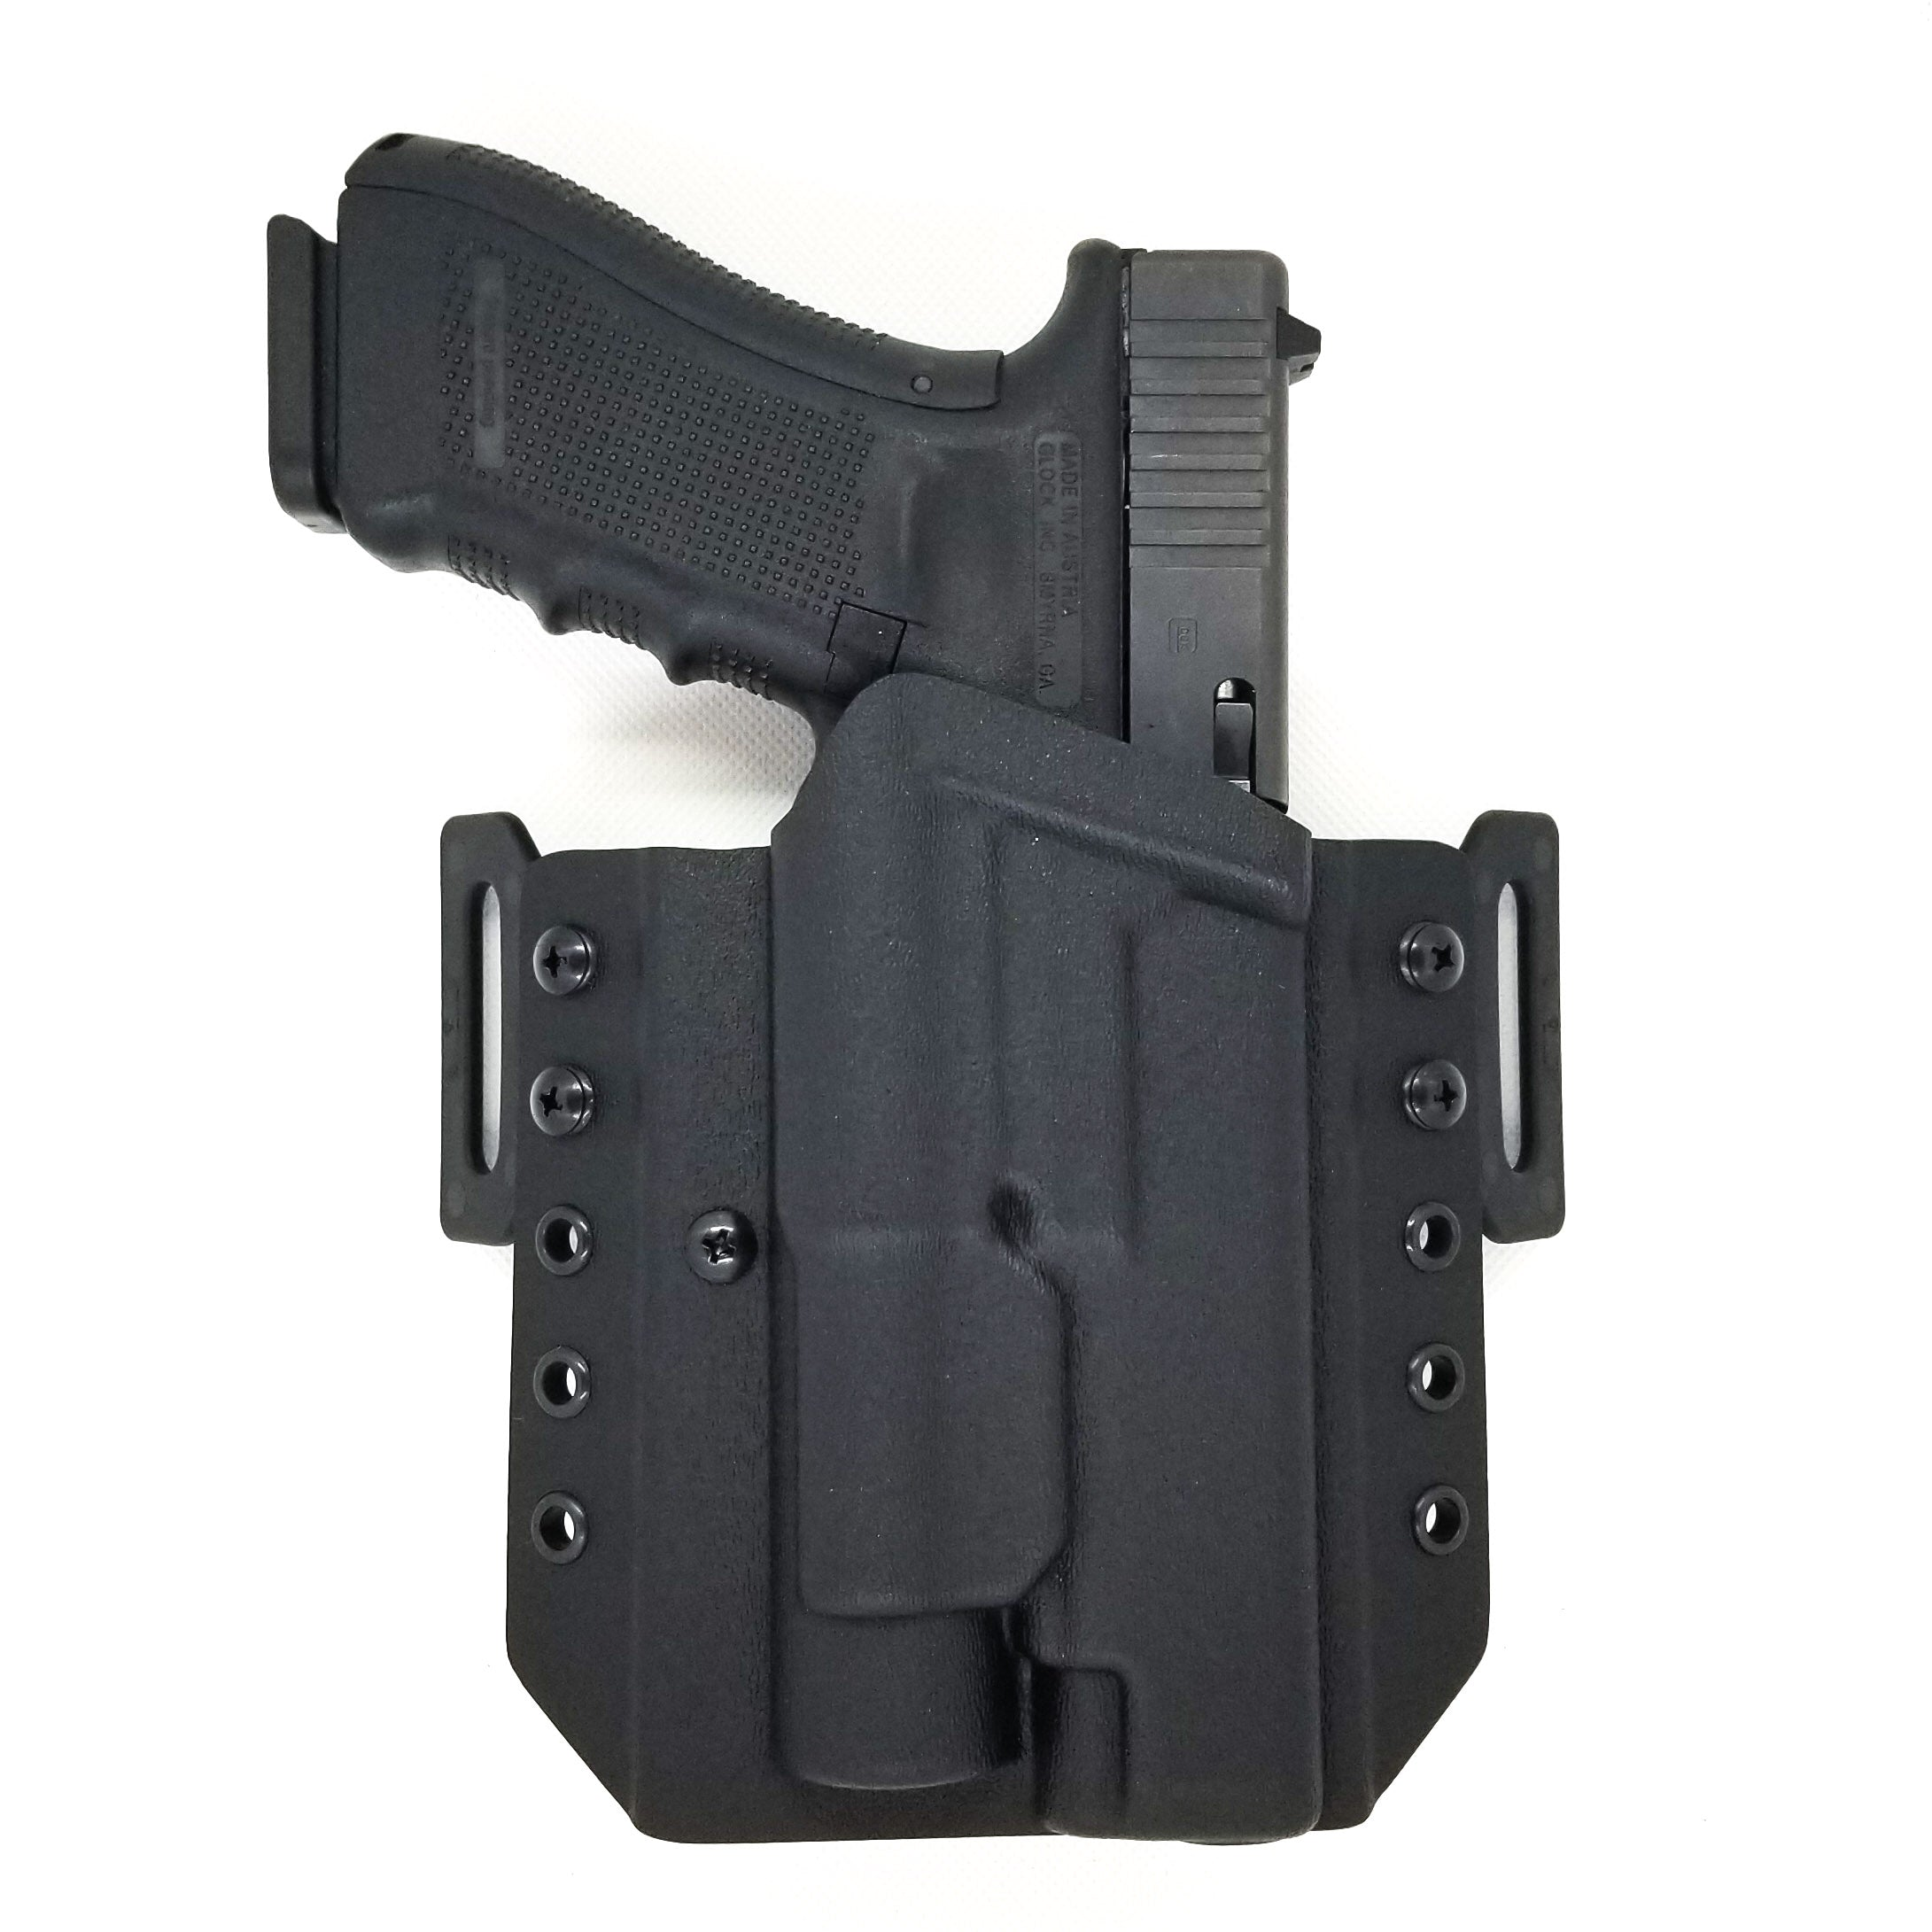 Glock 34/17/19 with TLR-1 Pancake Style